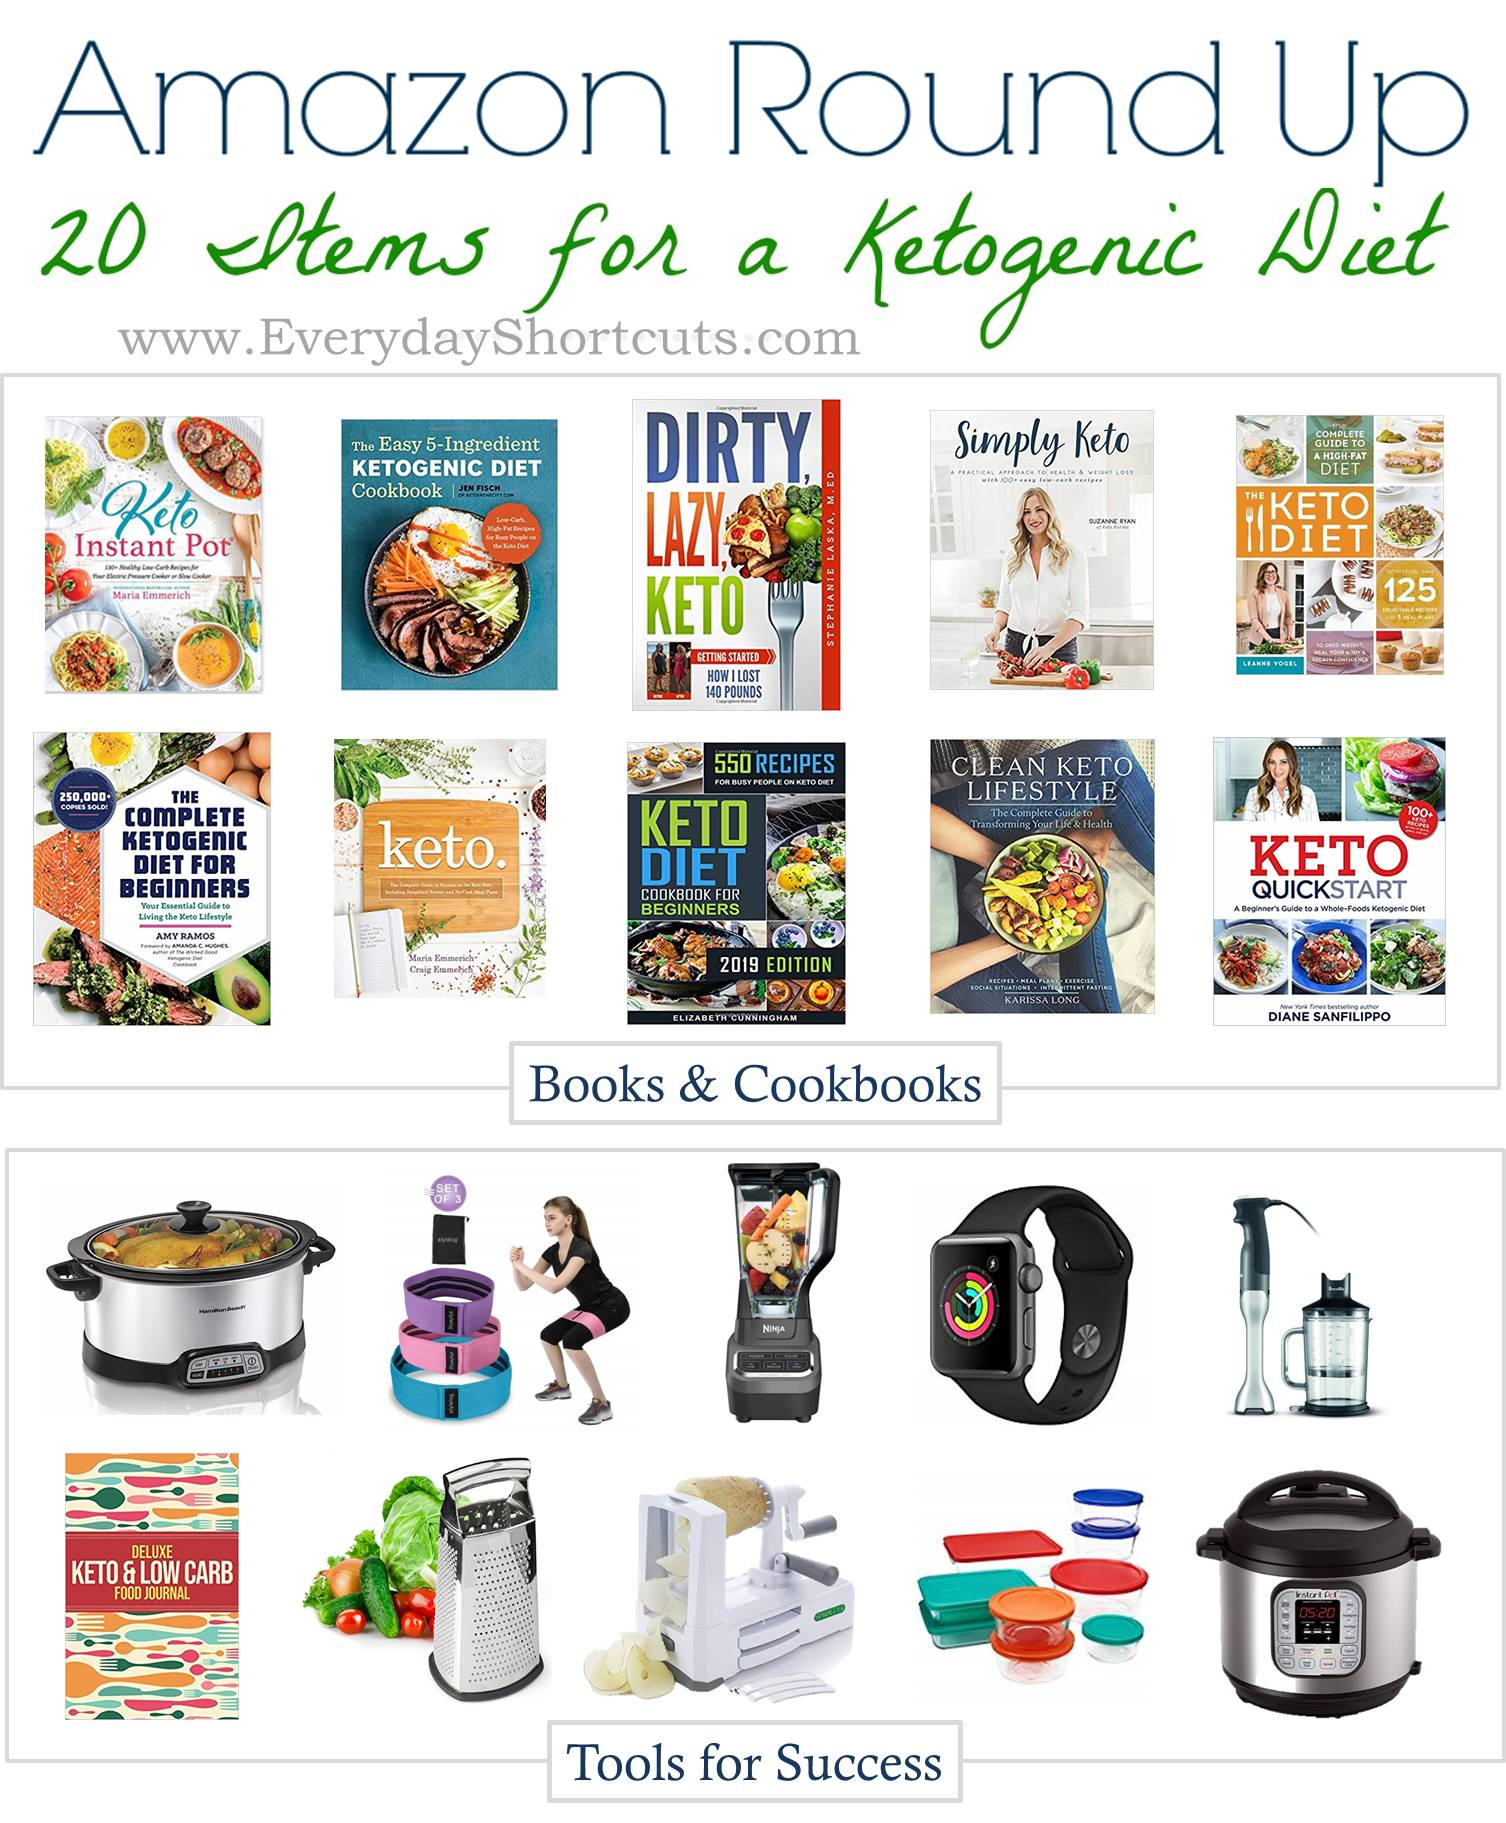 1.31-Amazon-Round-Up-20-Keto-Items-SHORTCUTS